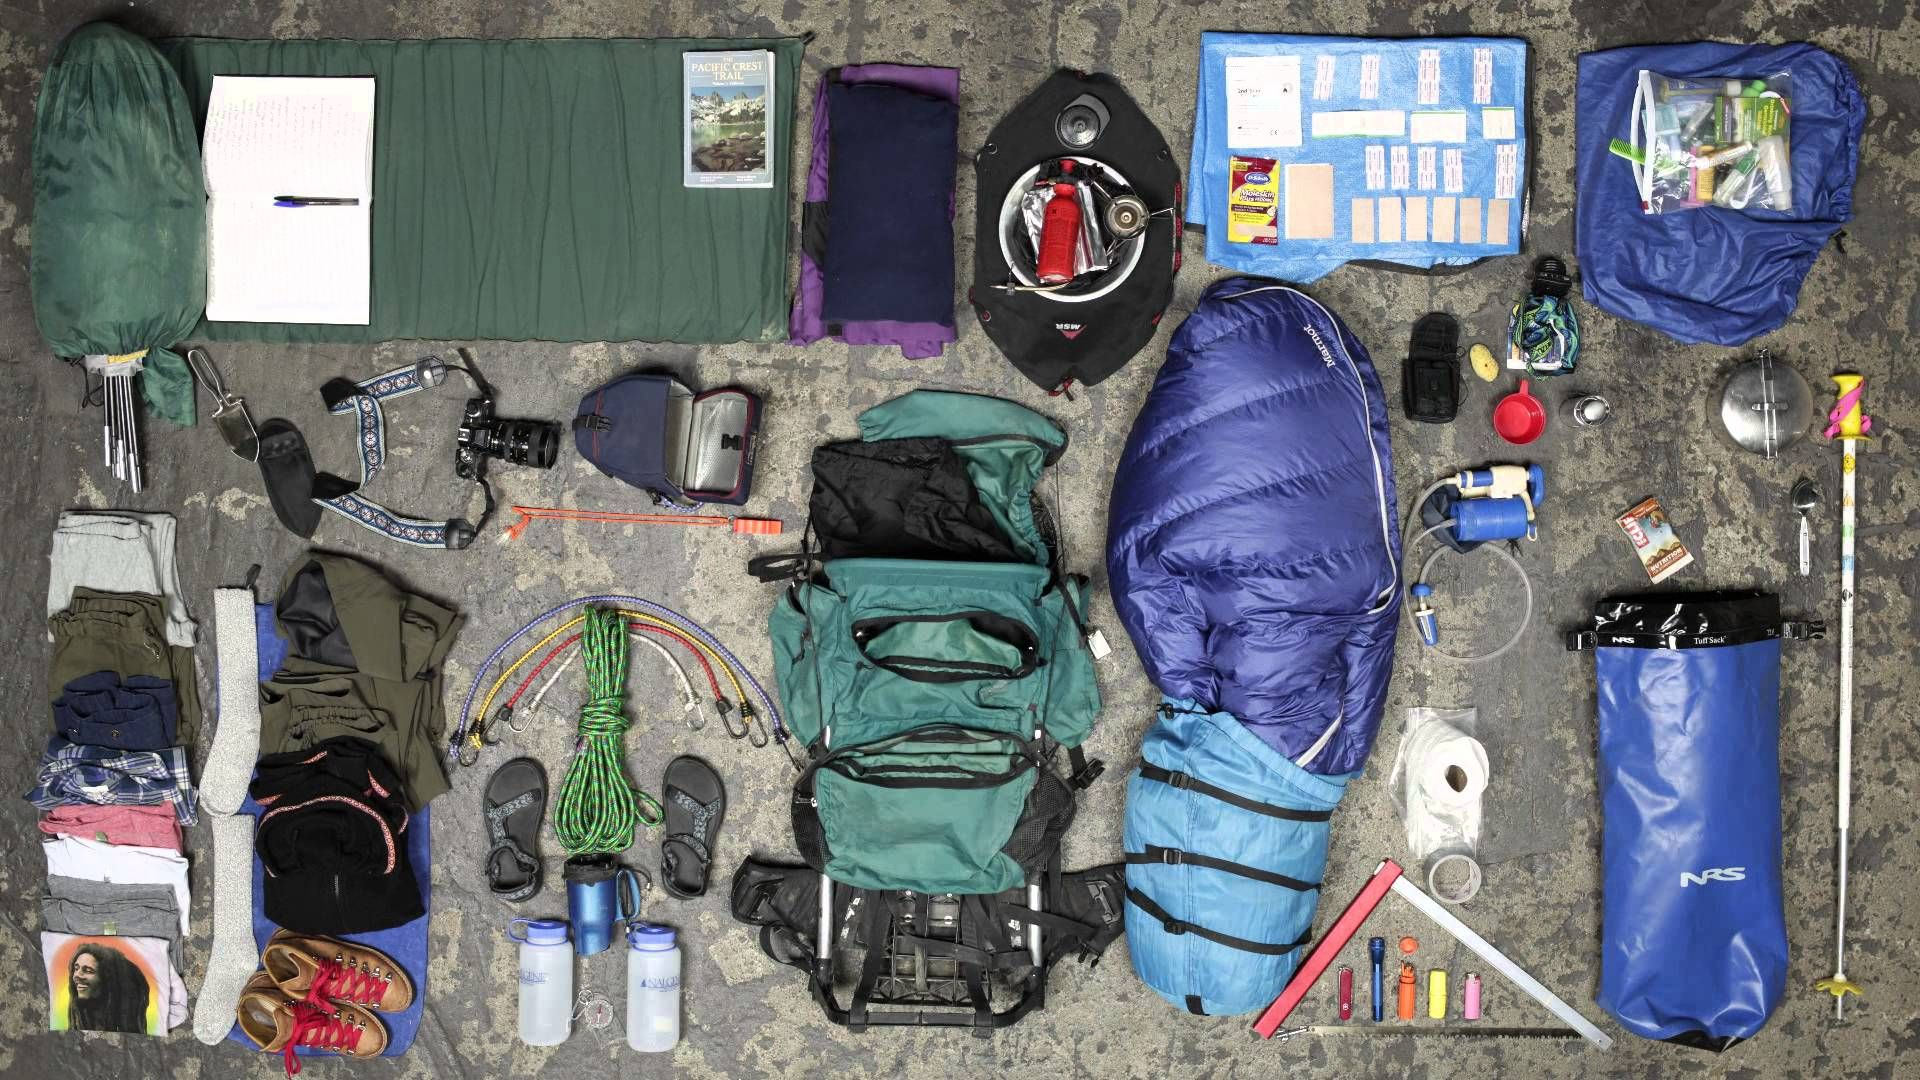 f190fa4d5 Image result for the backpack from the movie wild | HAULIN' in 2019 ...